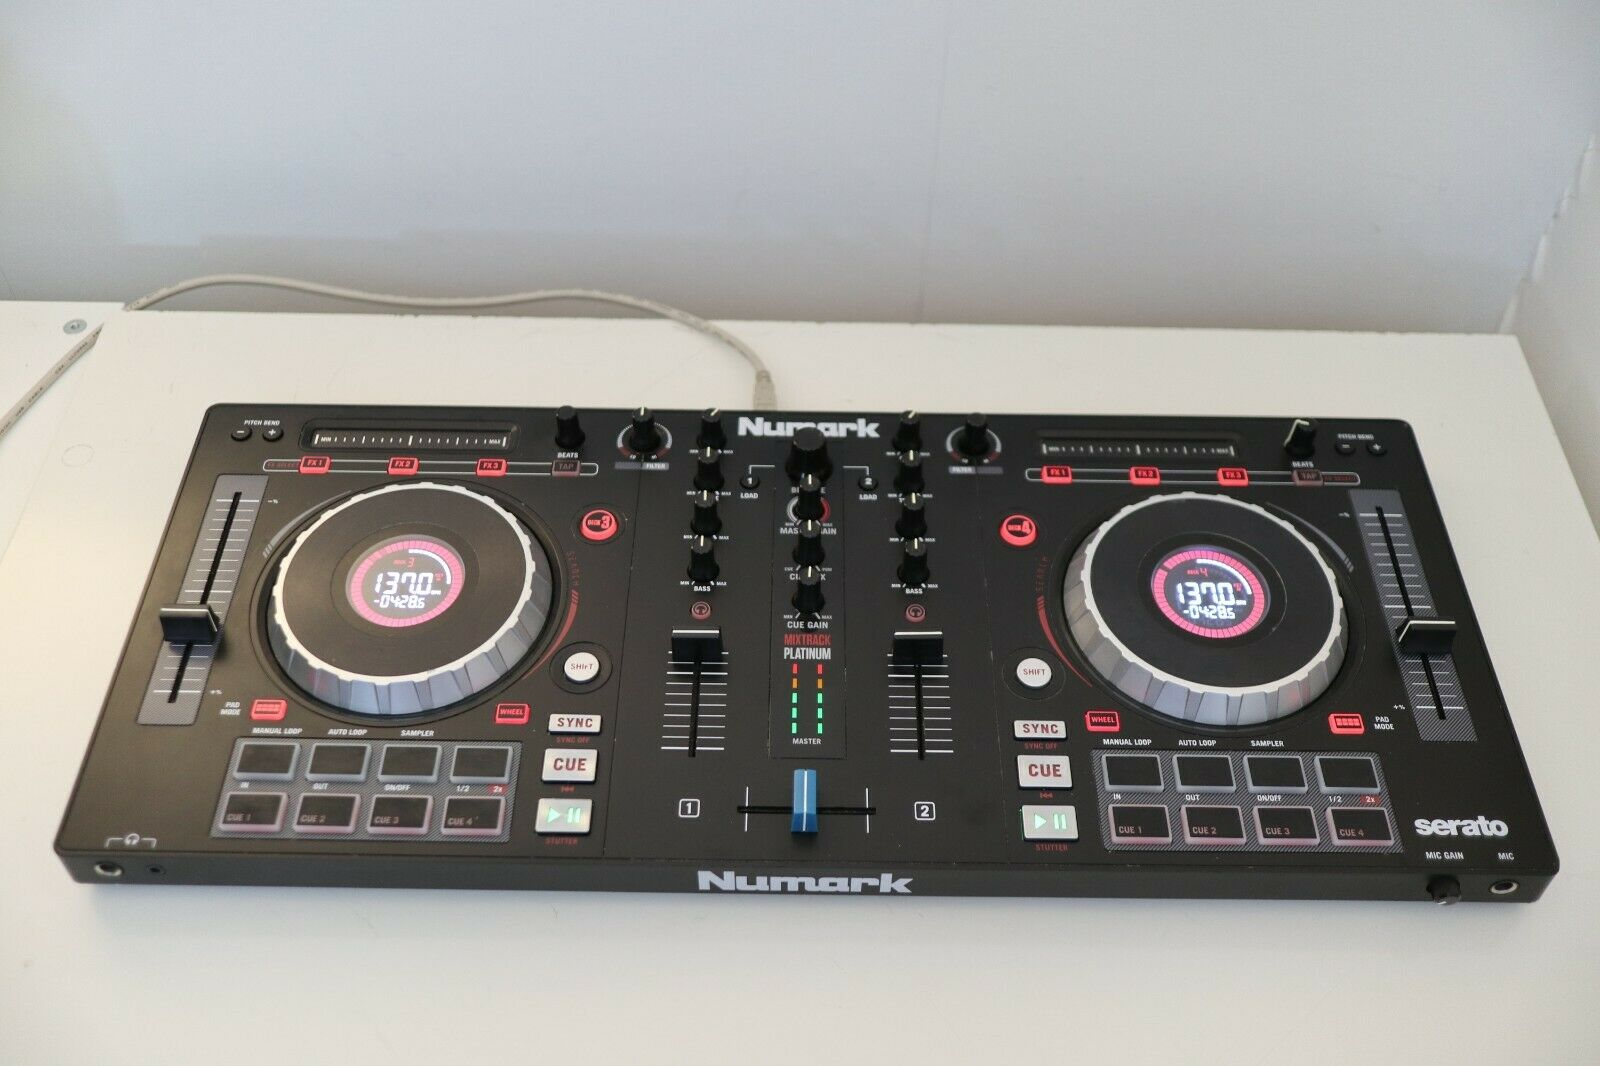 Numark Mixtrack Platinum DJ Controller with Jogwheel Displays